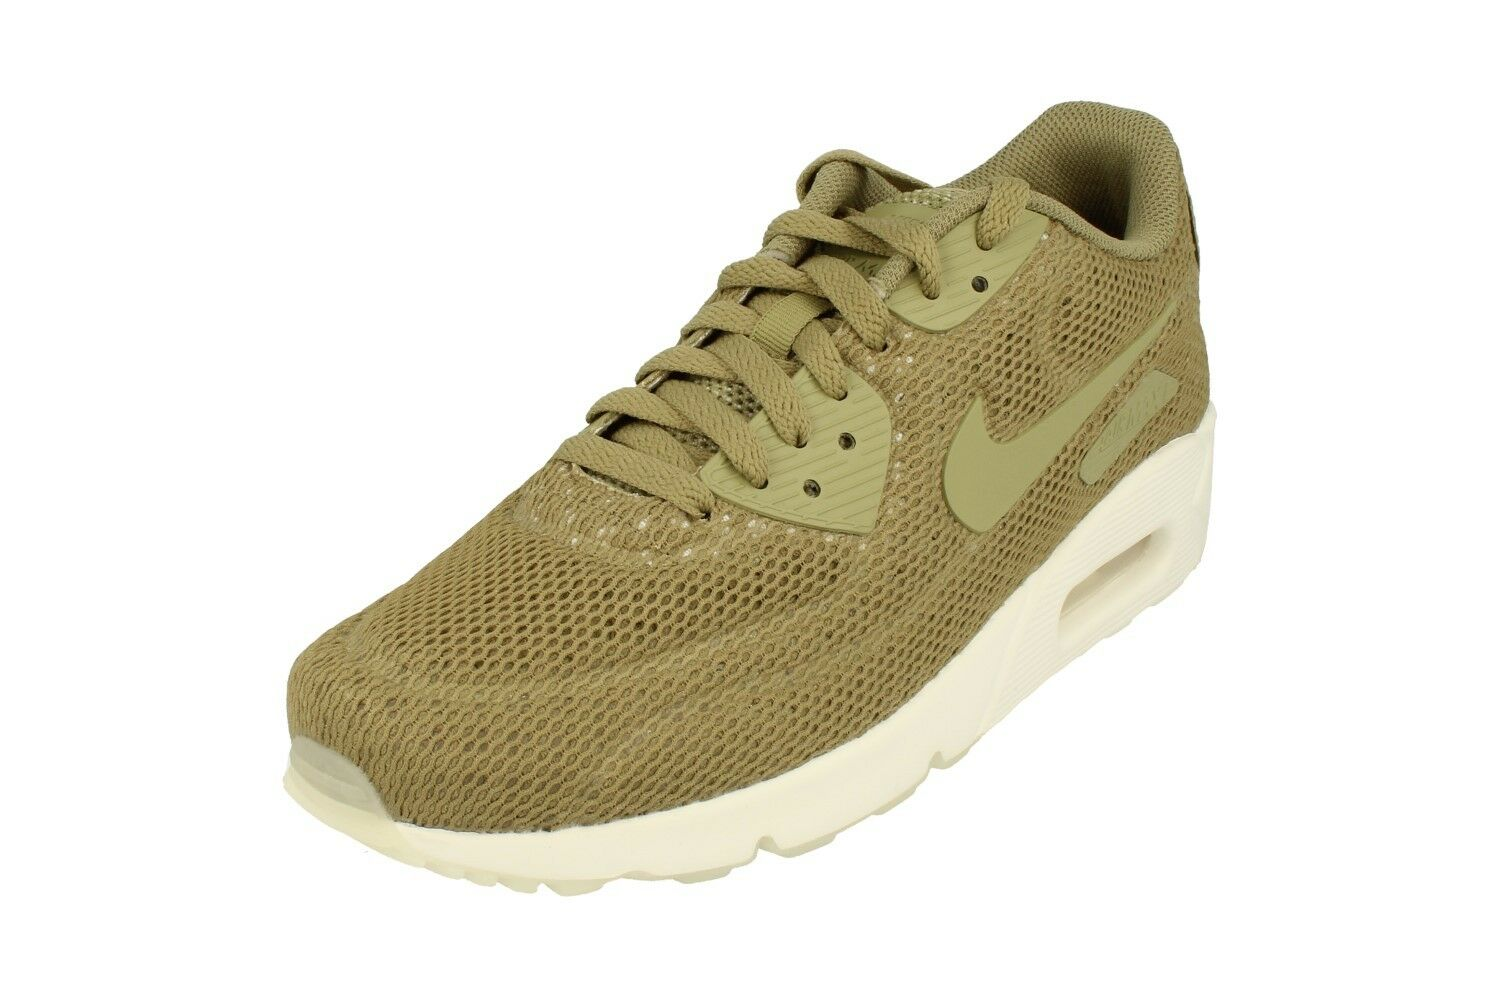 los angeles 519f0 6662b Nike Air Max 90 Ultra 2.0 Br Chaussure Chaussure Chaussure de Course pour  Homme 898010 Baskets 200 0334f4